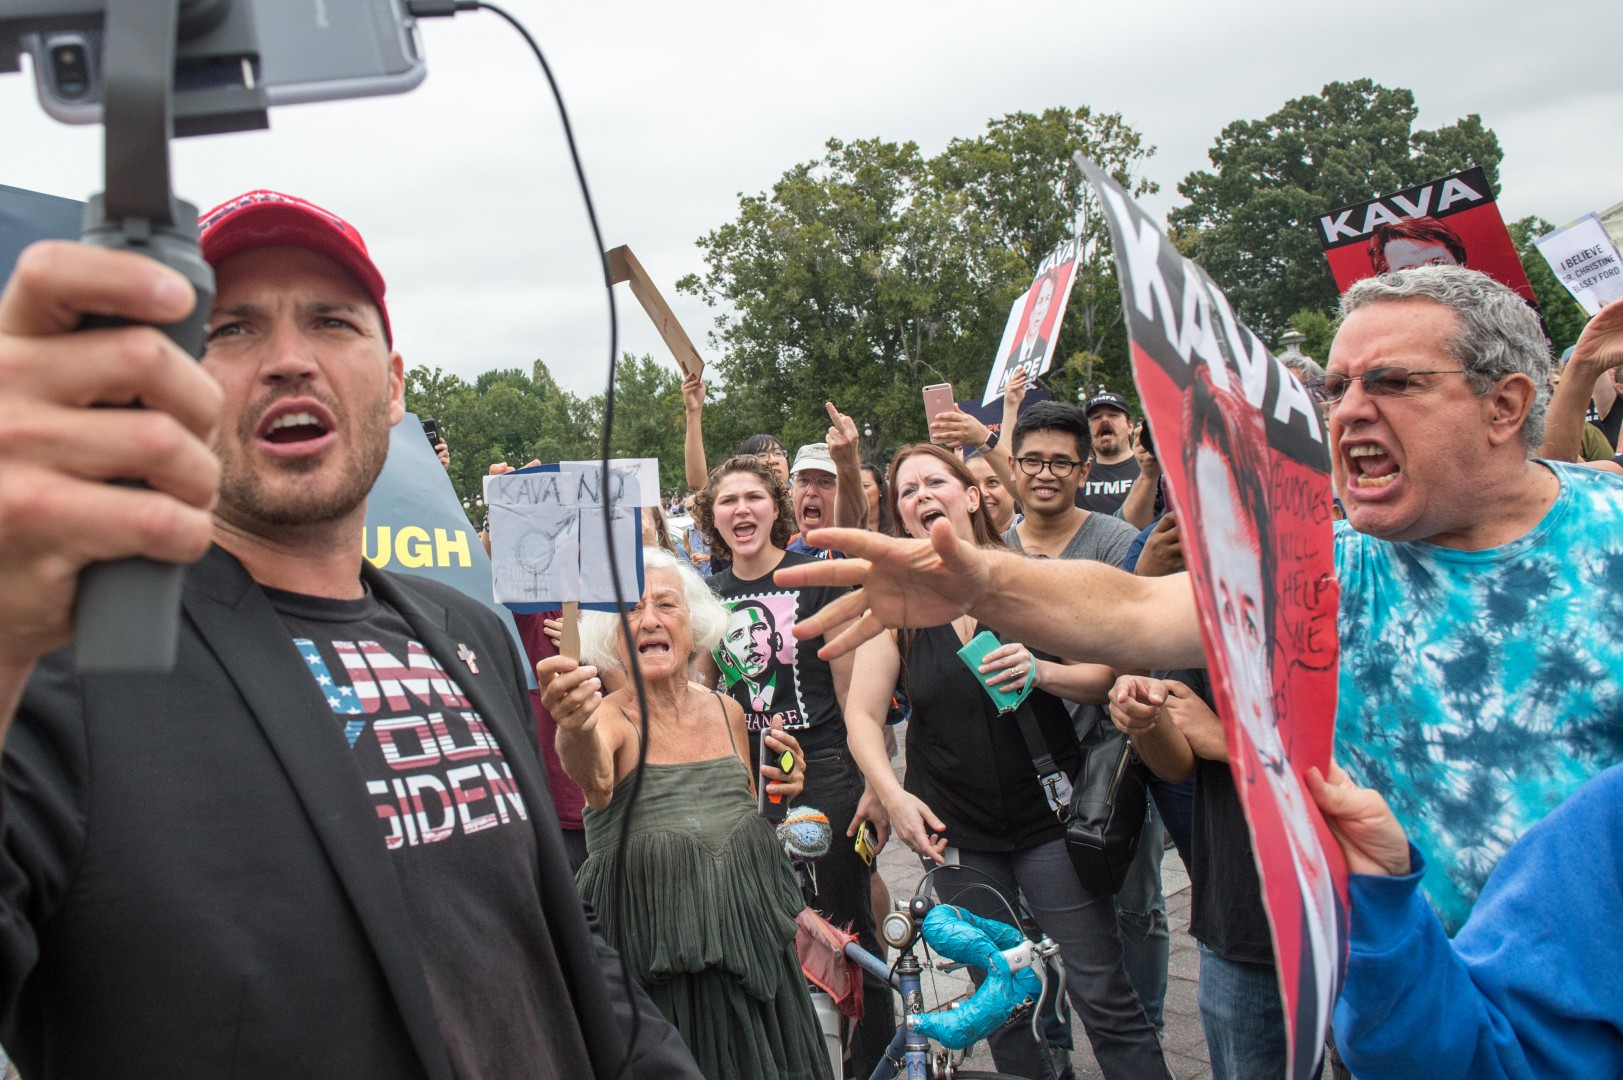 A Trump supporter is heckled by anti-Kavanaugh demonstrators protesting against the appointment of Supreme Court nominee Brett Kavanaugh in Washington DC, on October 6, 2018. - The US Senate confirmed conservative judge Kavanaugh as the next Supreme Court justice on October 6, offering US President Donald Trump a big political win and tilting the nation's high court decidedly to the right. (Photo by ROBERTO SCHMIDT / AFP)